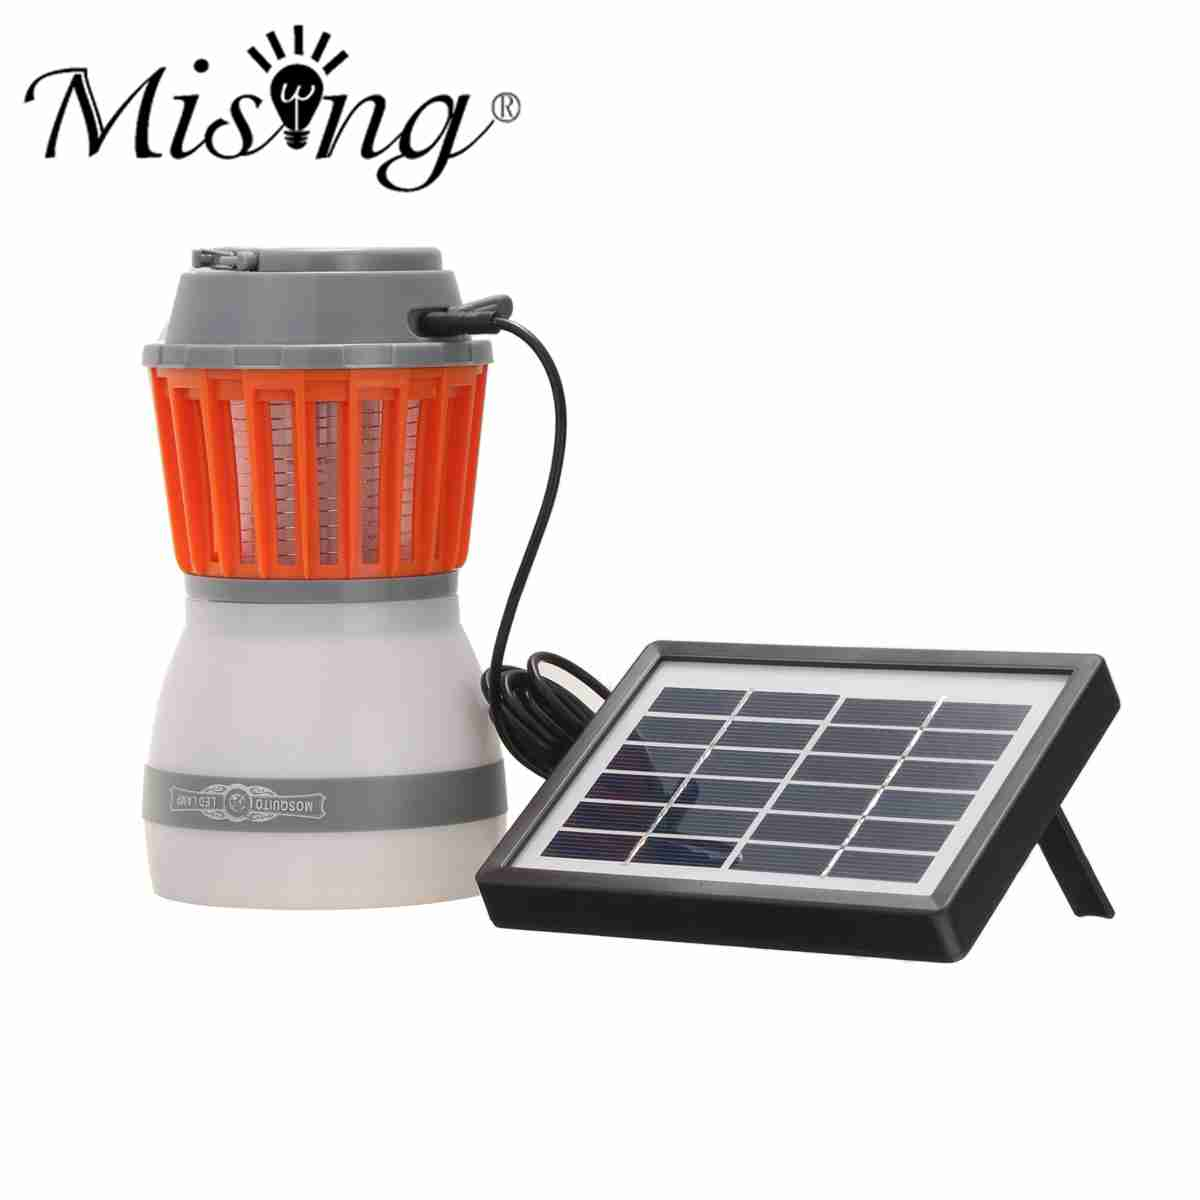 1 satz 5 V ABS Solar Panel USB Lade Moskito-killer Lampe LED Licht Camping Licht Dimmbar Tragbare